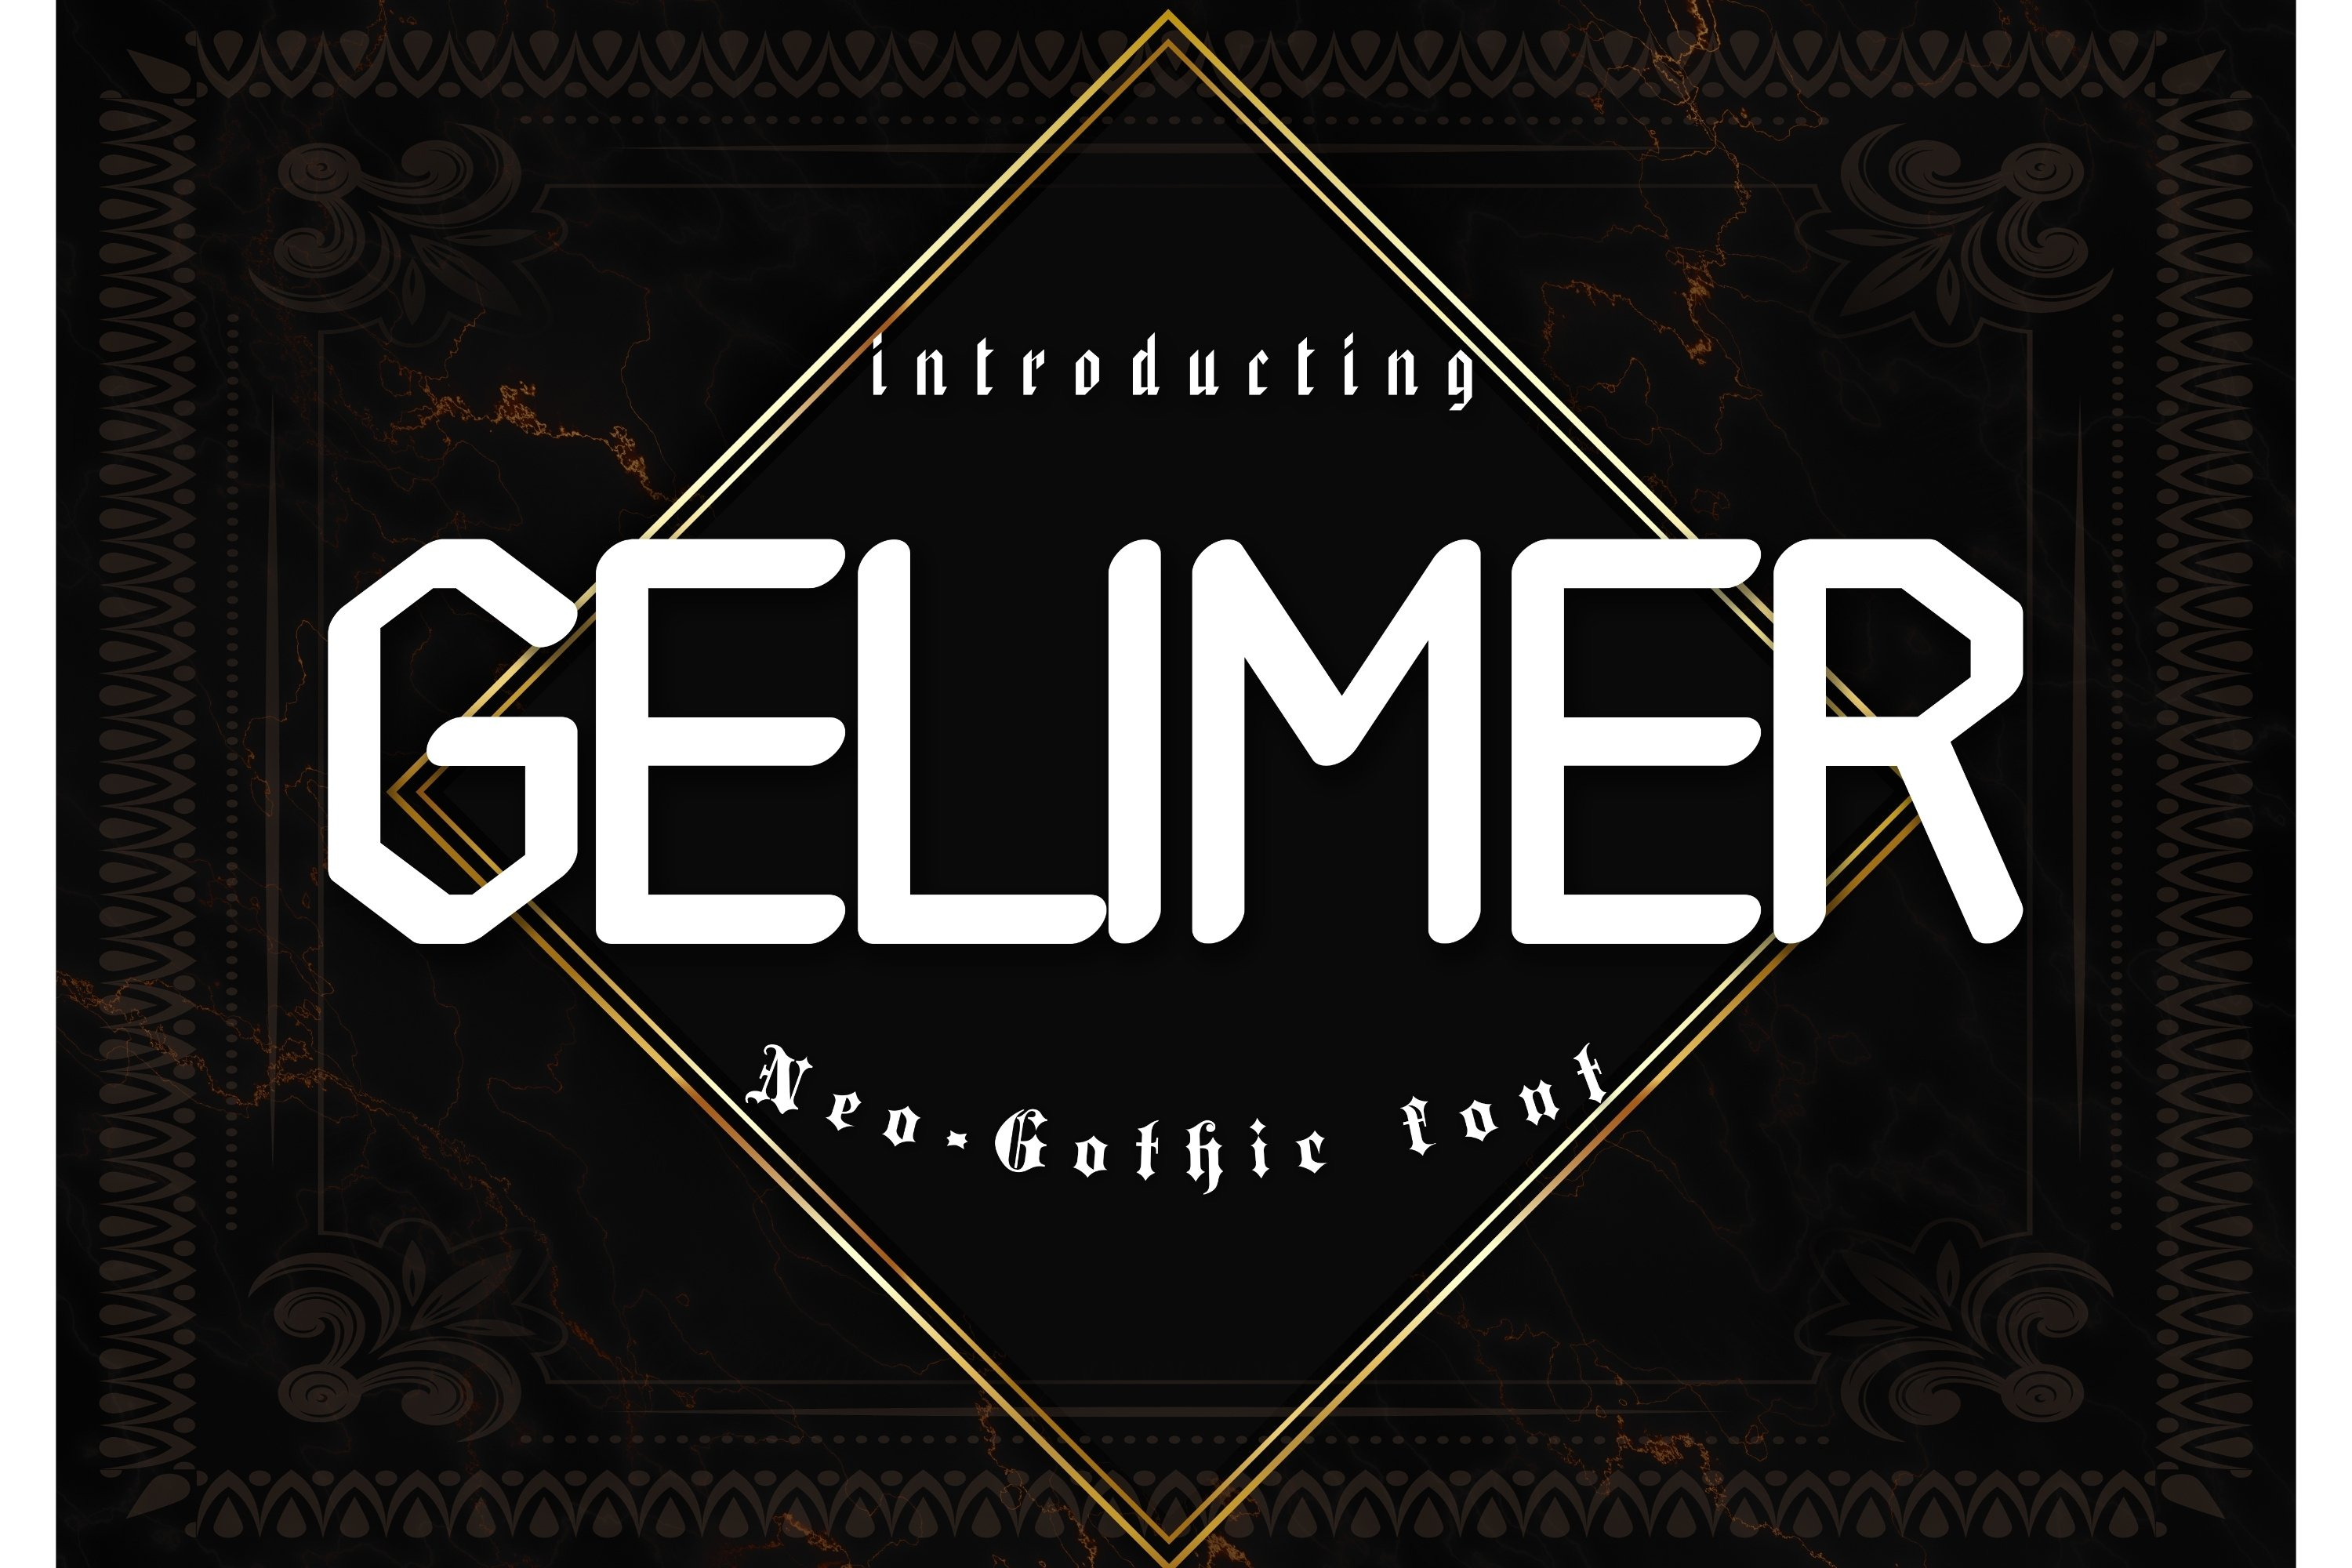 Gelimer Neo-Gothic Font example image 1